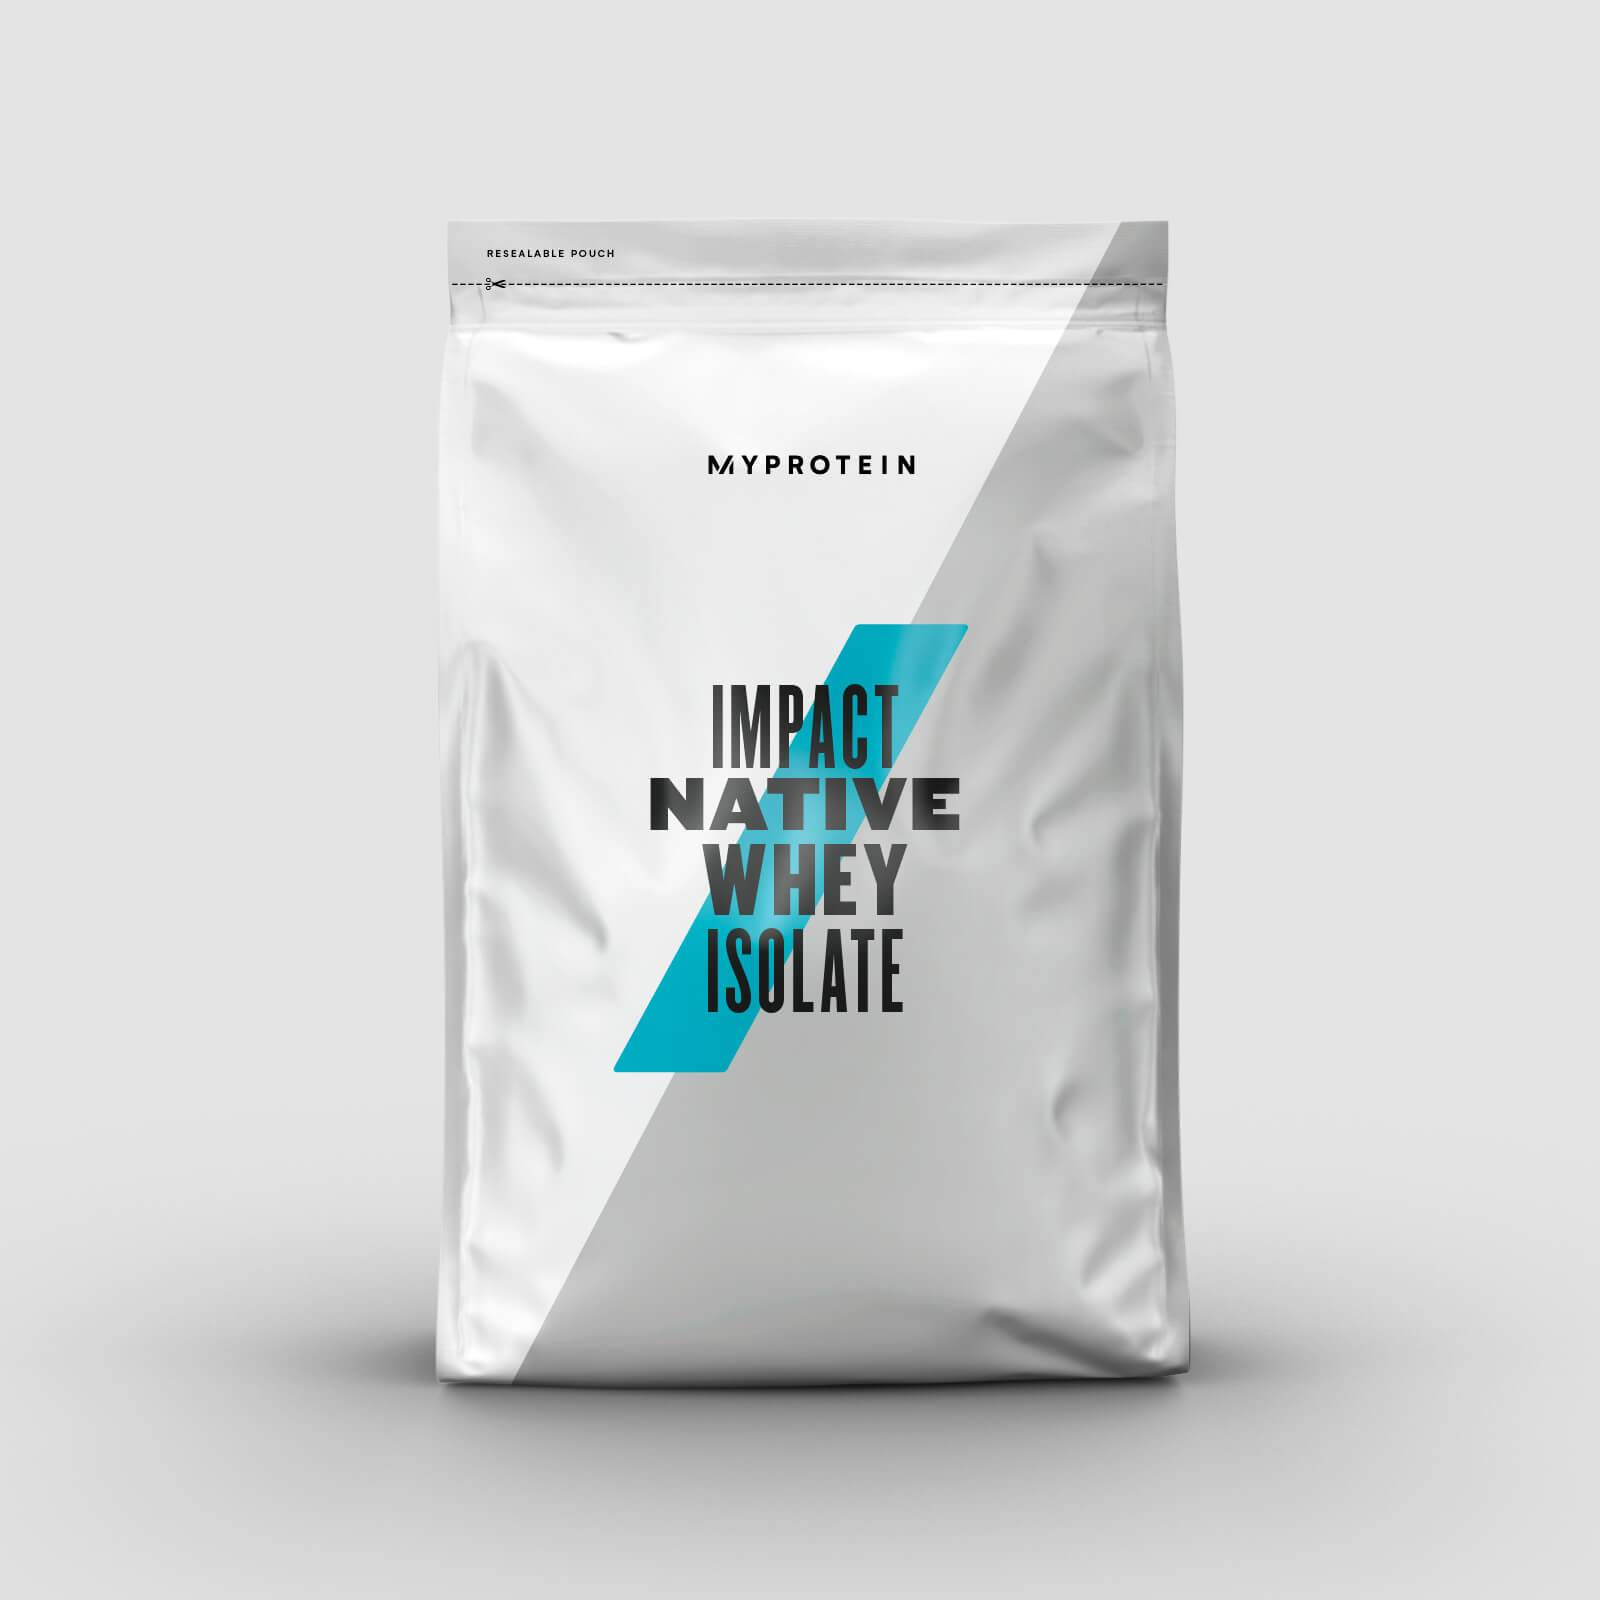 Myprotein Impact Native Whey Isolate - 2.5kg - Natural Banana and Cinnamon